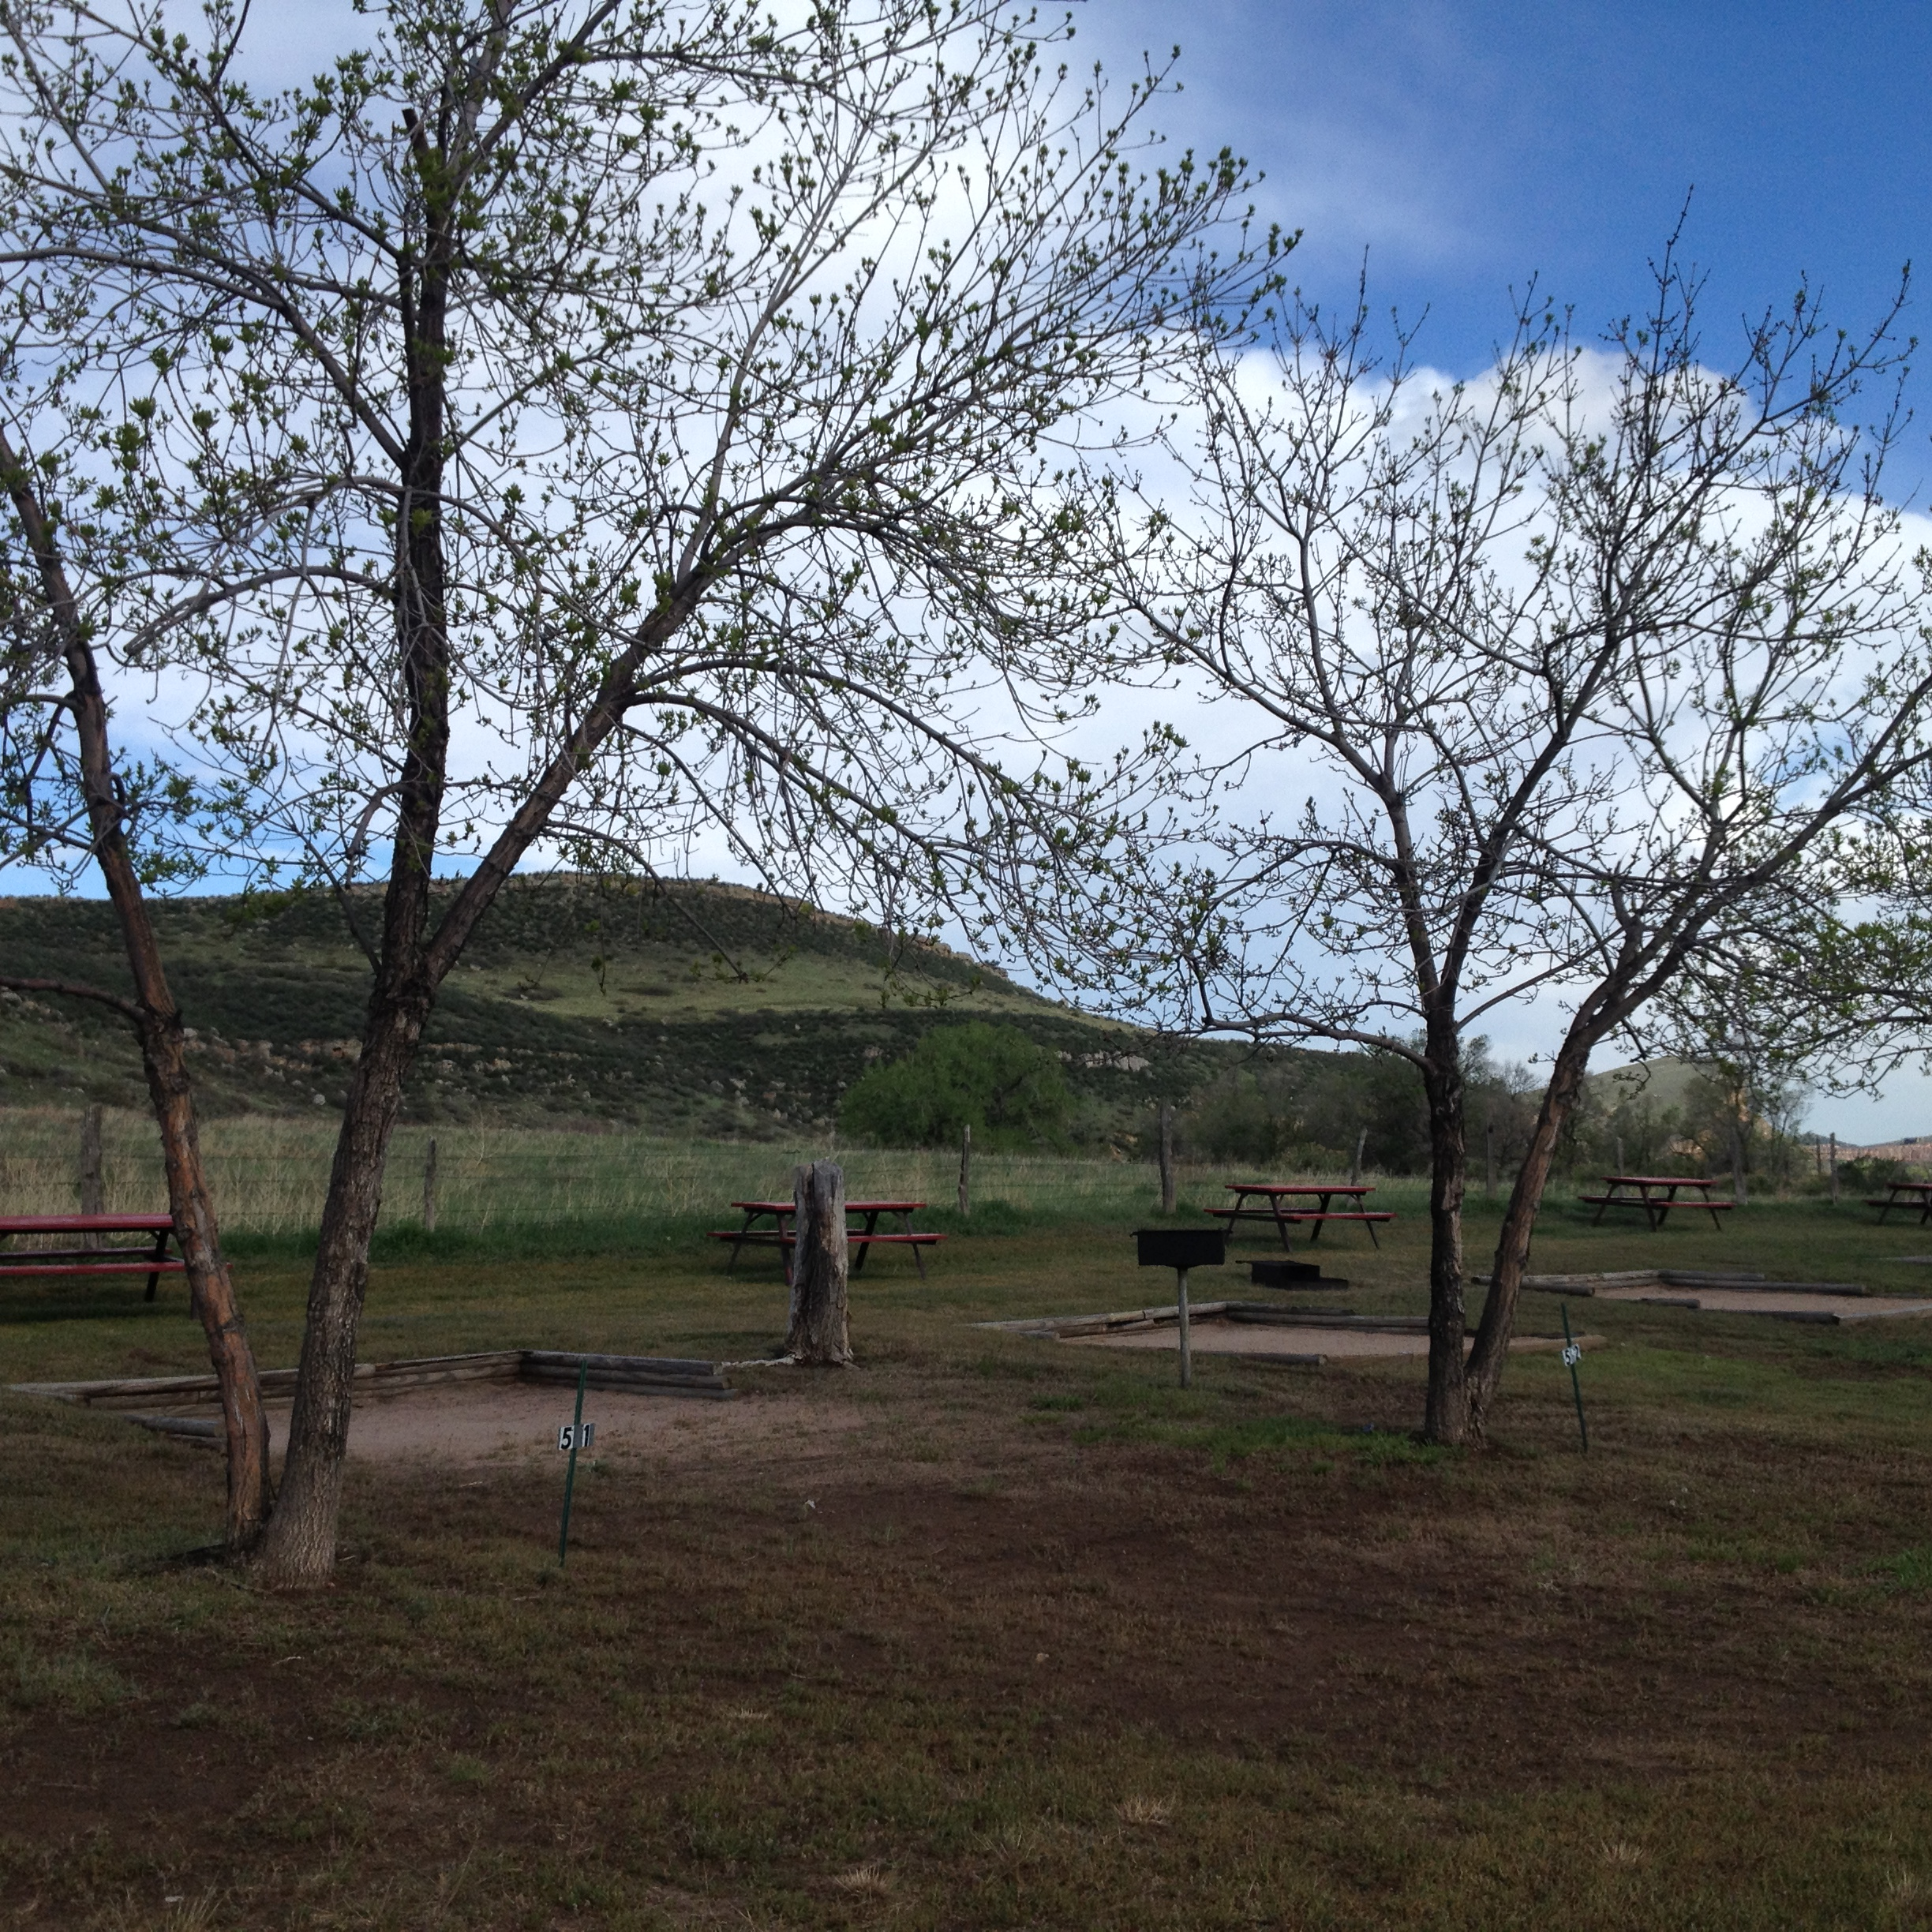 Campground Review: Fort Collins–Poudre Canyon KOA